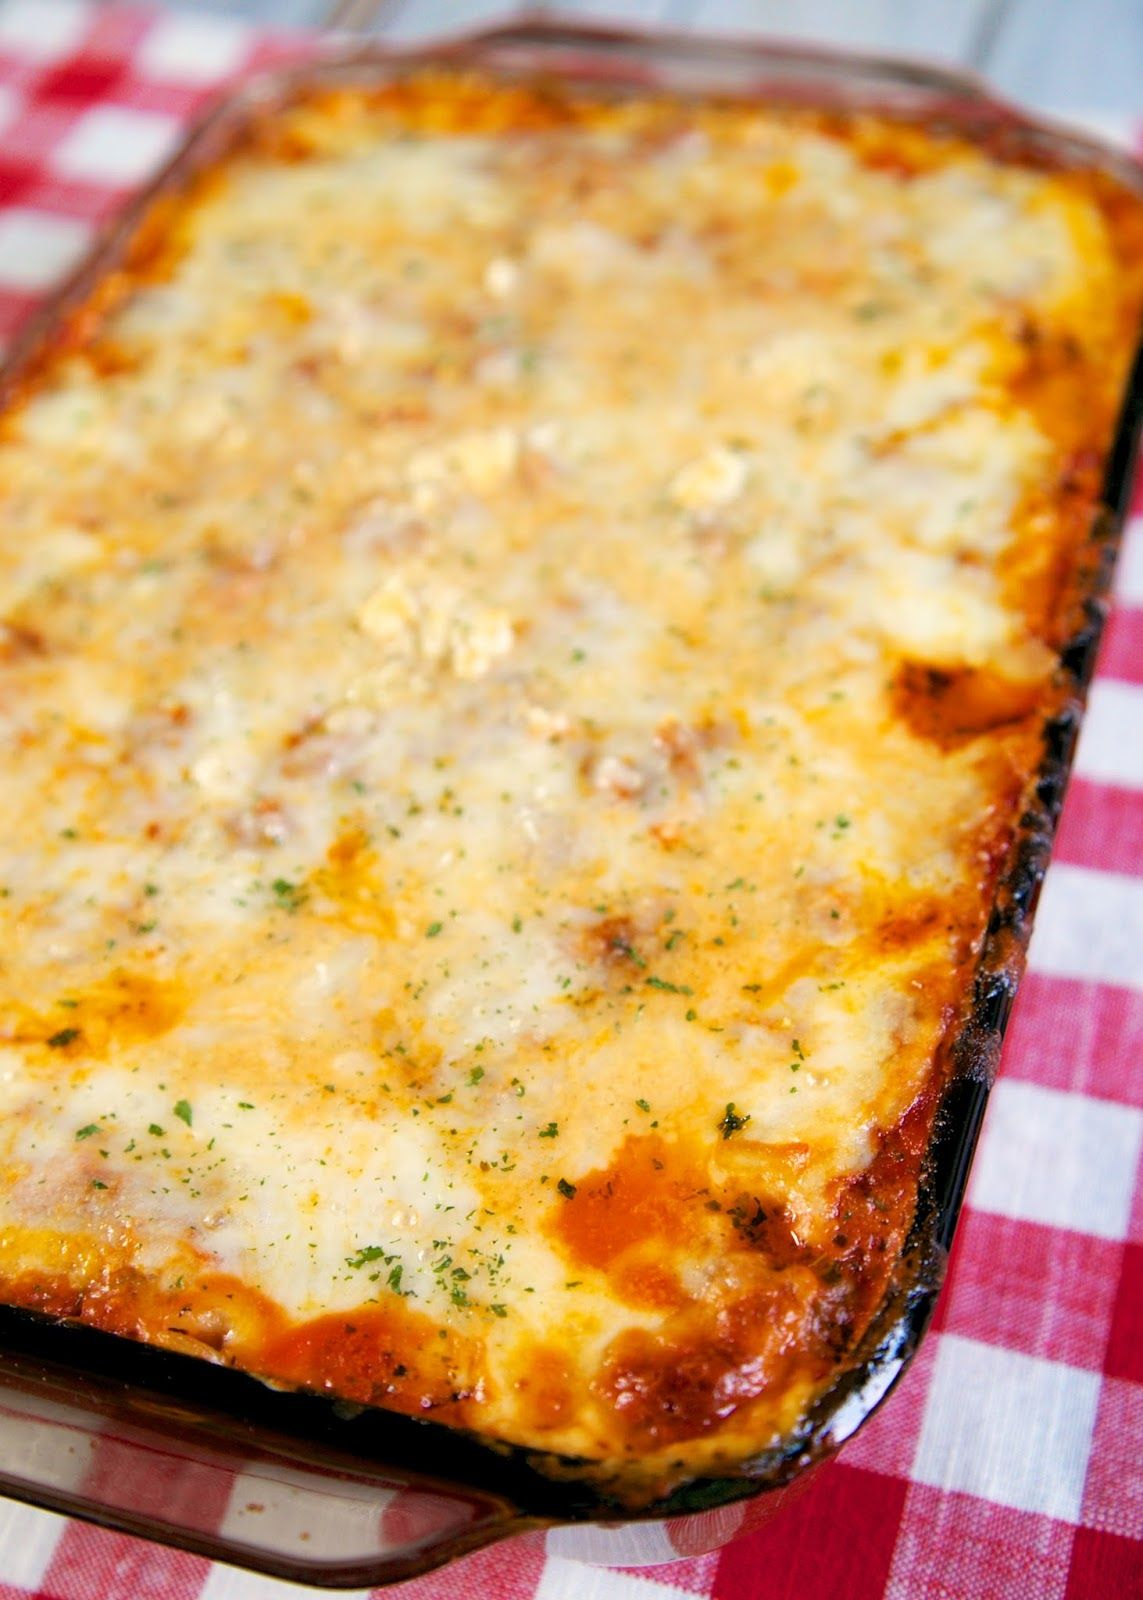 The Best Baked Spaghetti Tastes Amazing As Is And Even Better When Cream Cheese Fresh Garlic Cloves Fenne Recipes Baked Spaghetti Casserole Baked Spaghetti